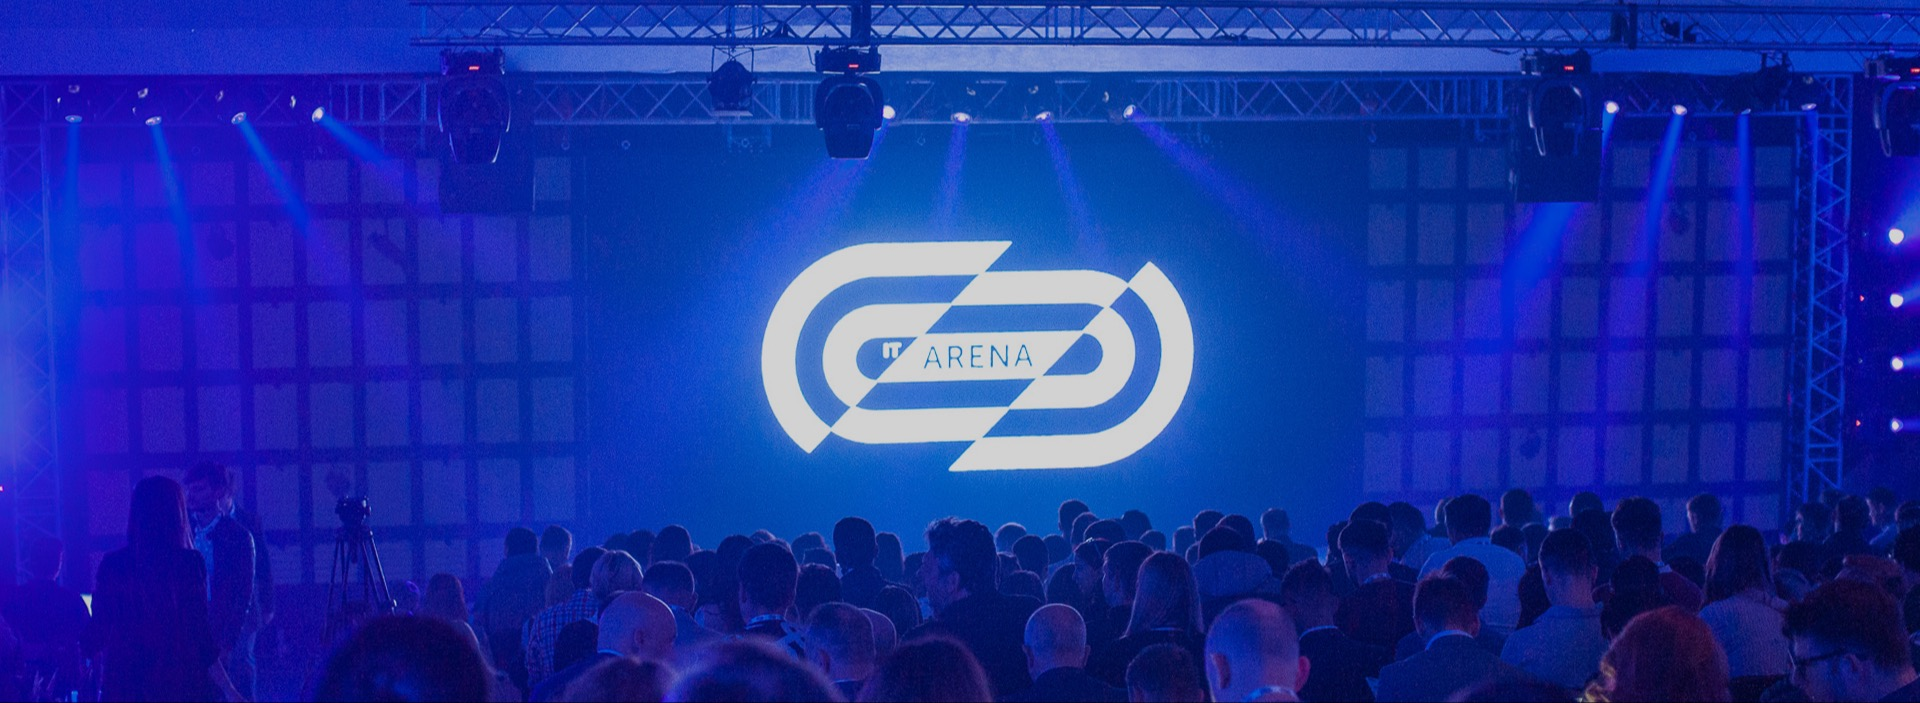 Ukraine's biggest tech event: IT Arena gathers the best of IT community